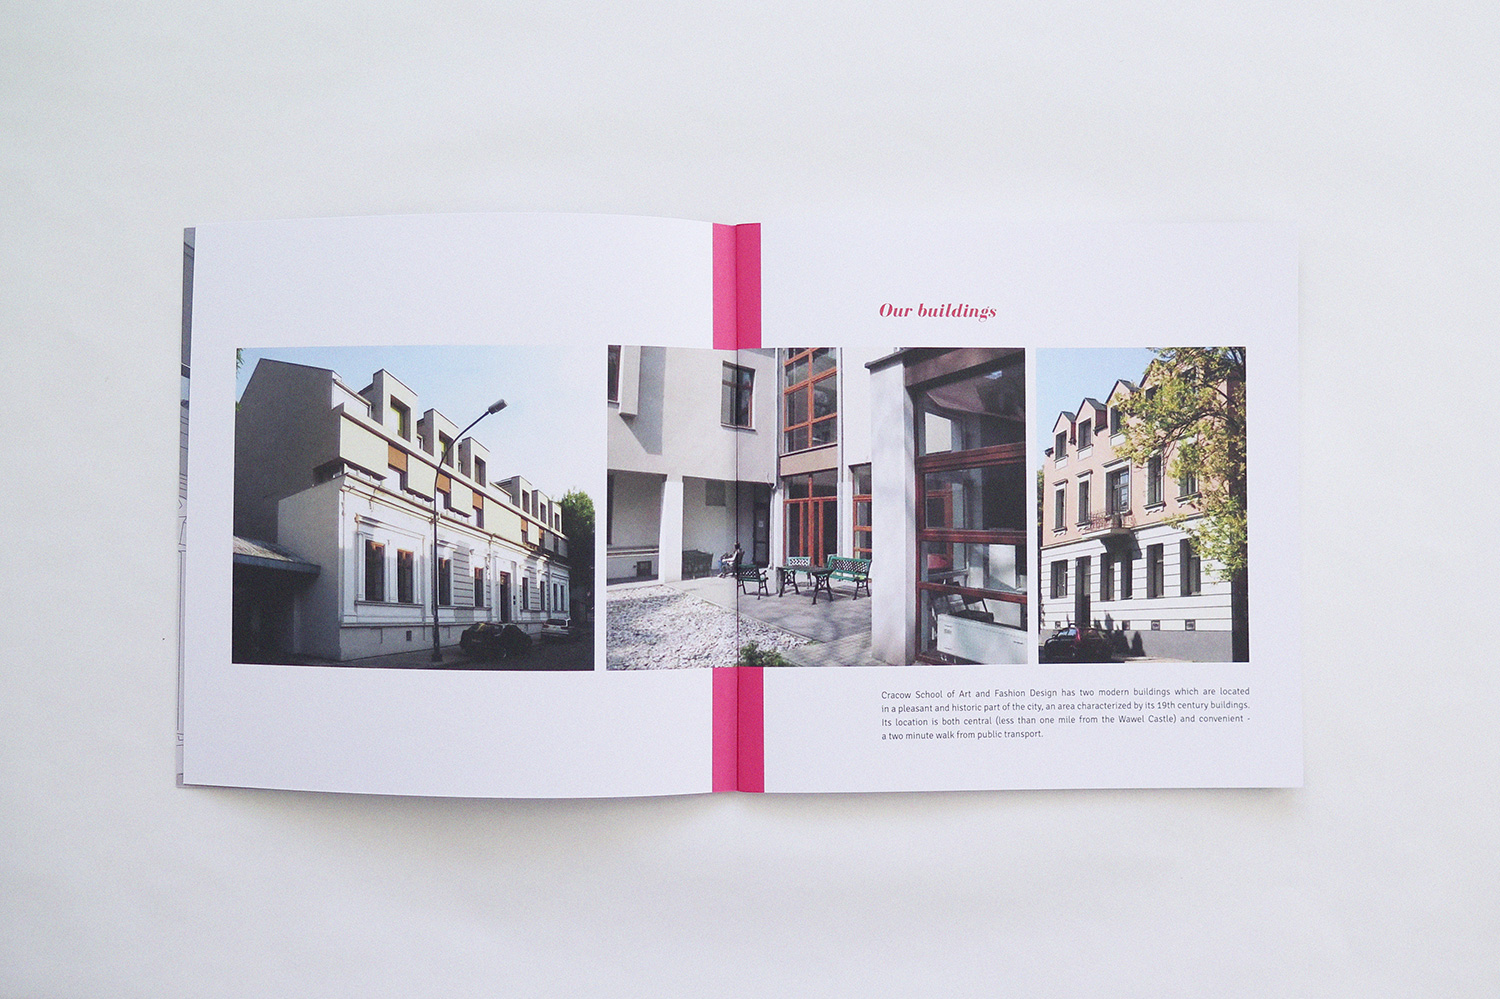 cracow school of art and fashion design brochure by nina gregier (2)